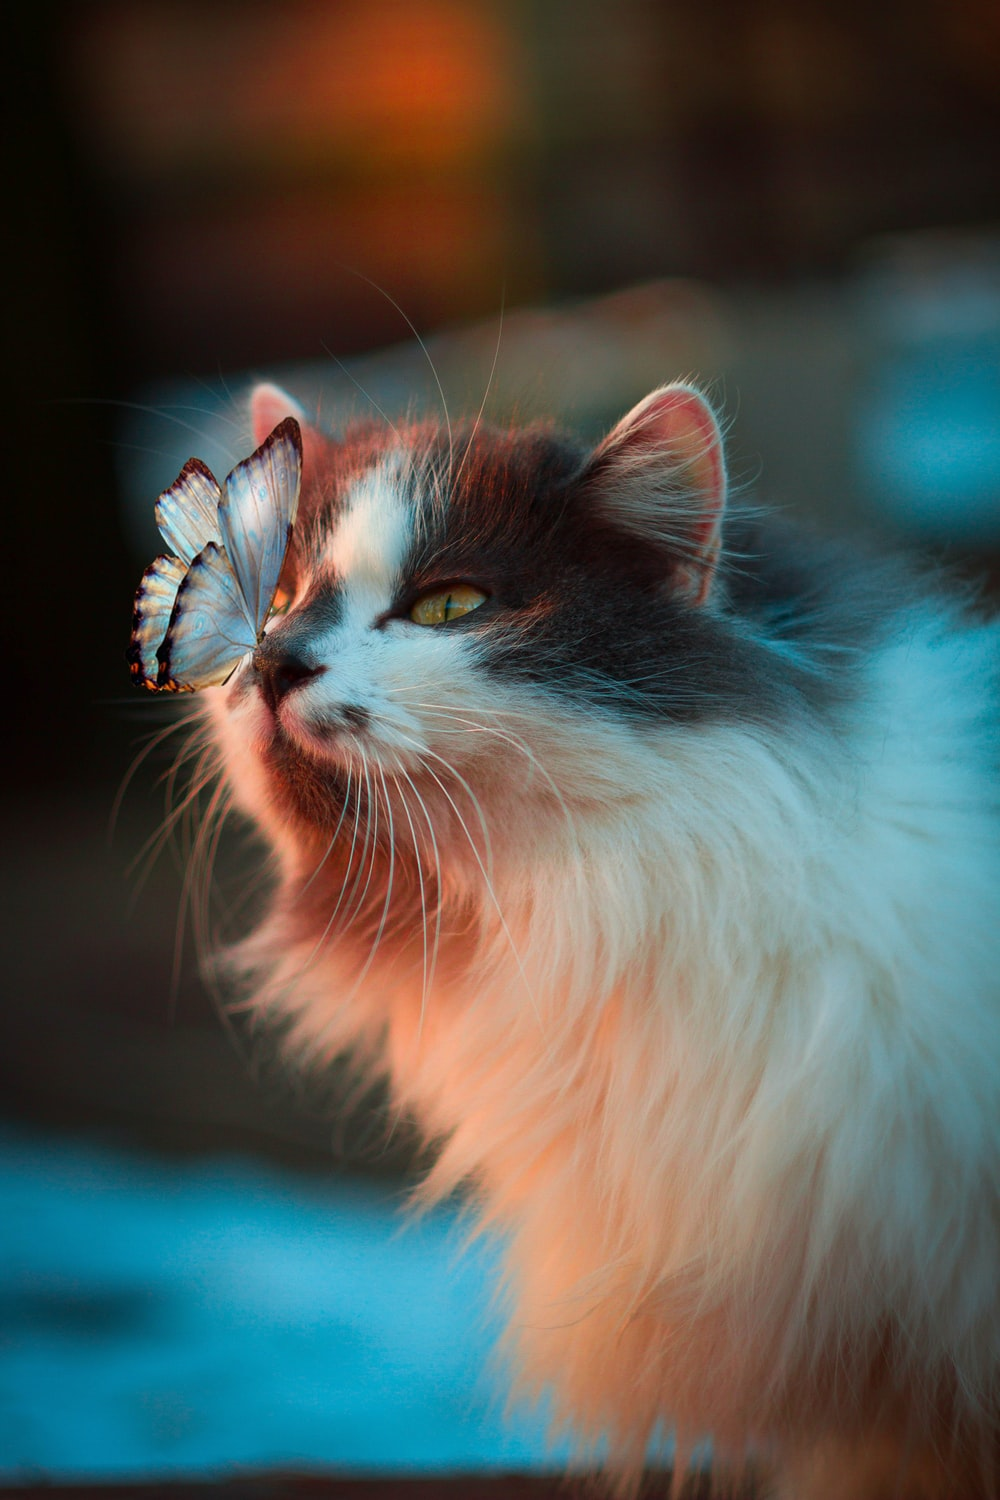 white butterfly resting on cat's nose